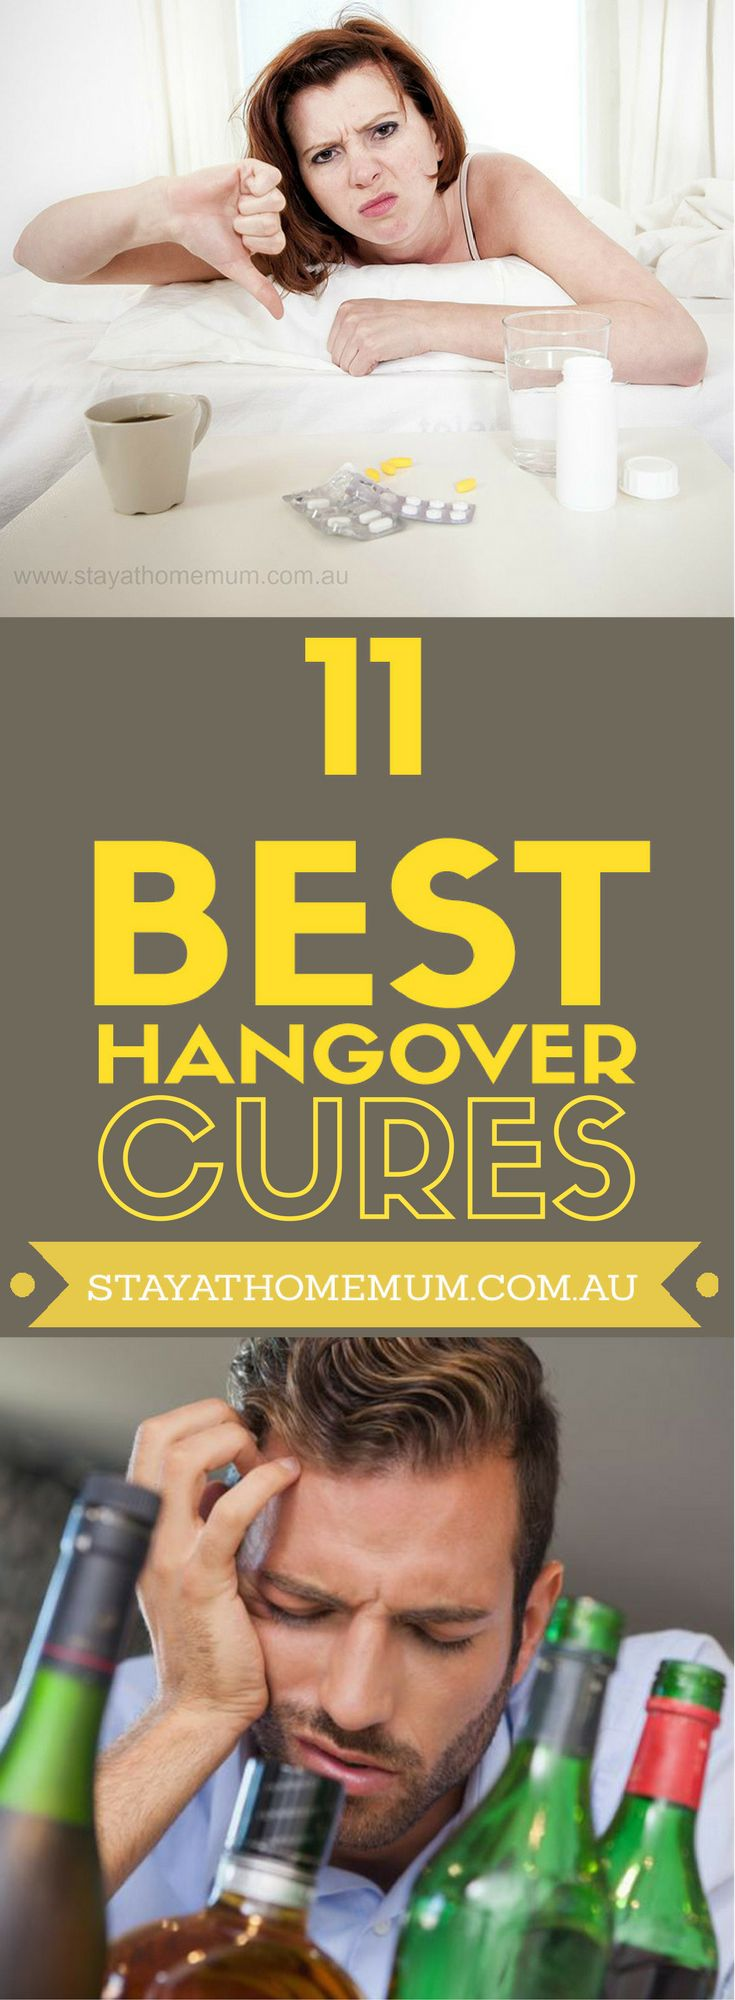 We at SAHM would be very silly if we assumed that all our wonderful fans were tea-totallers and wouldn't touch a drop of the evil liquor. So we'll share with you some of the best hangover cures!